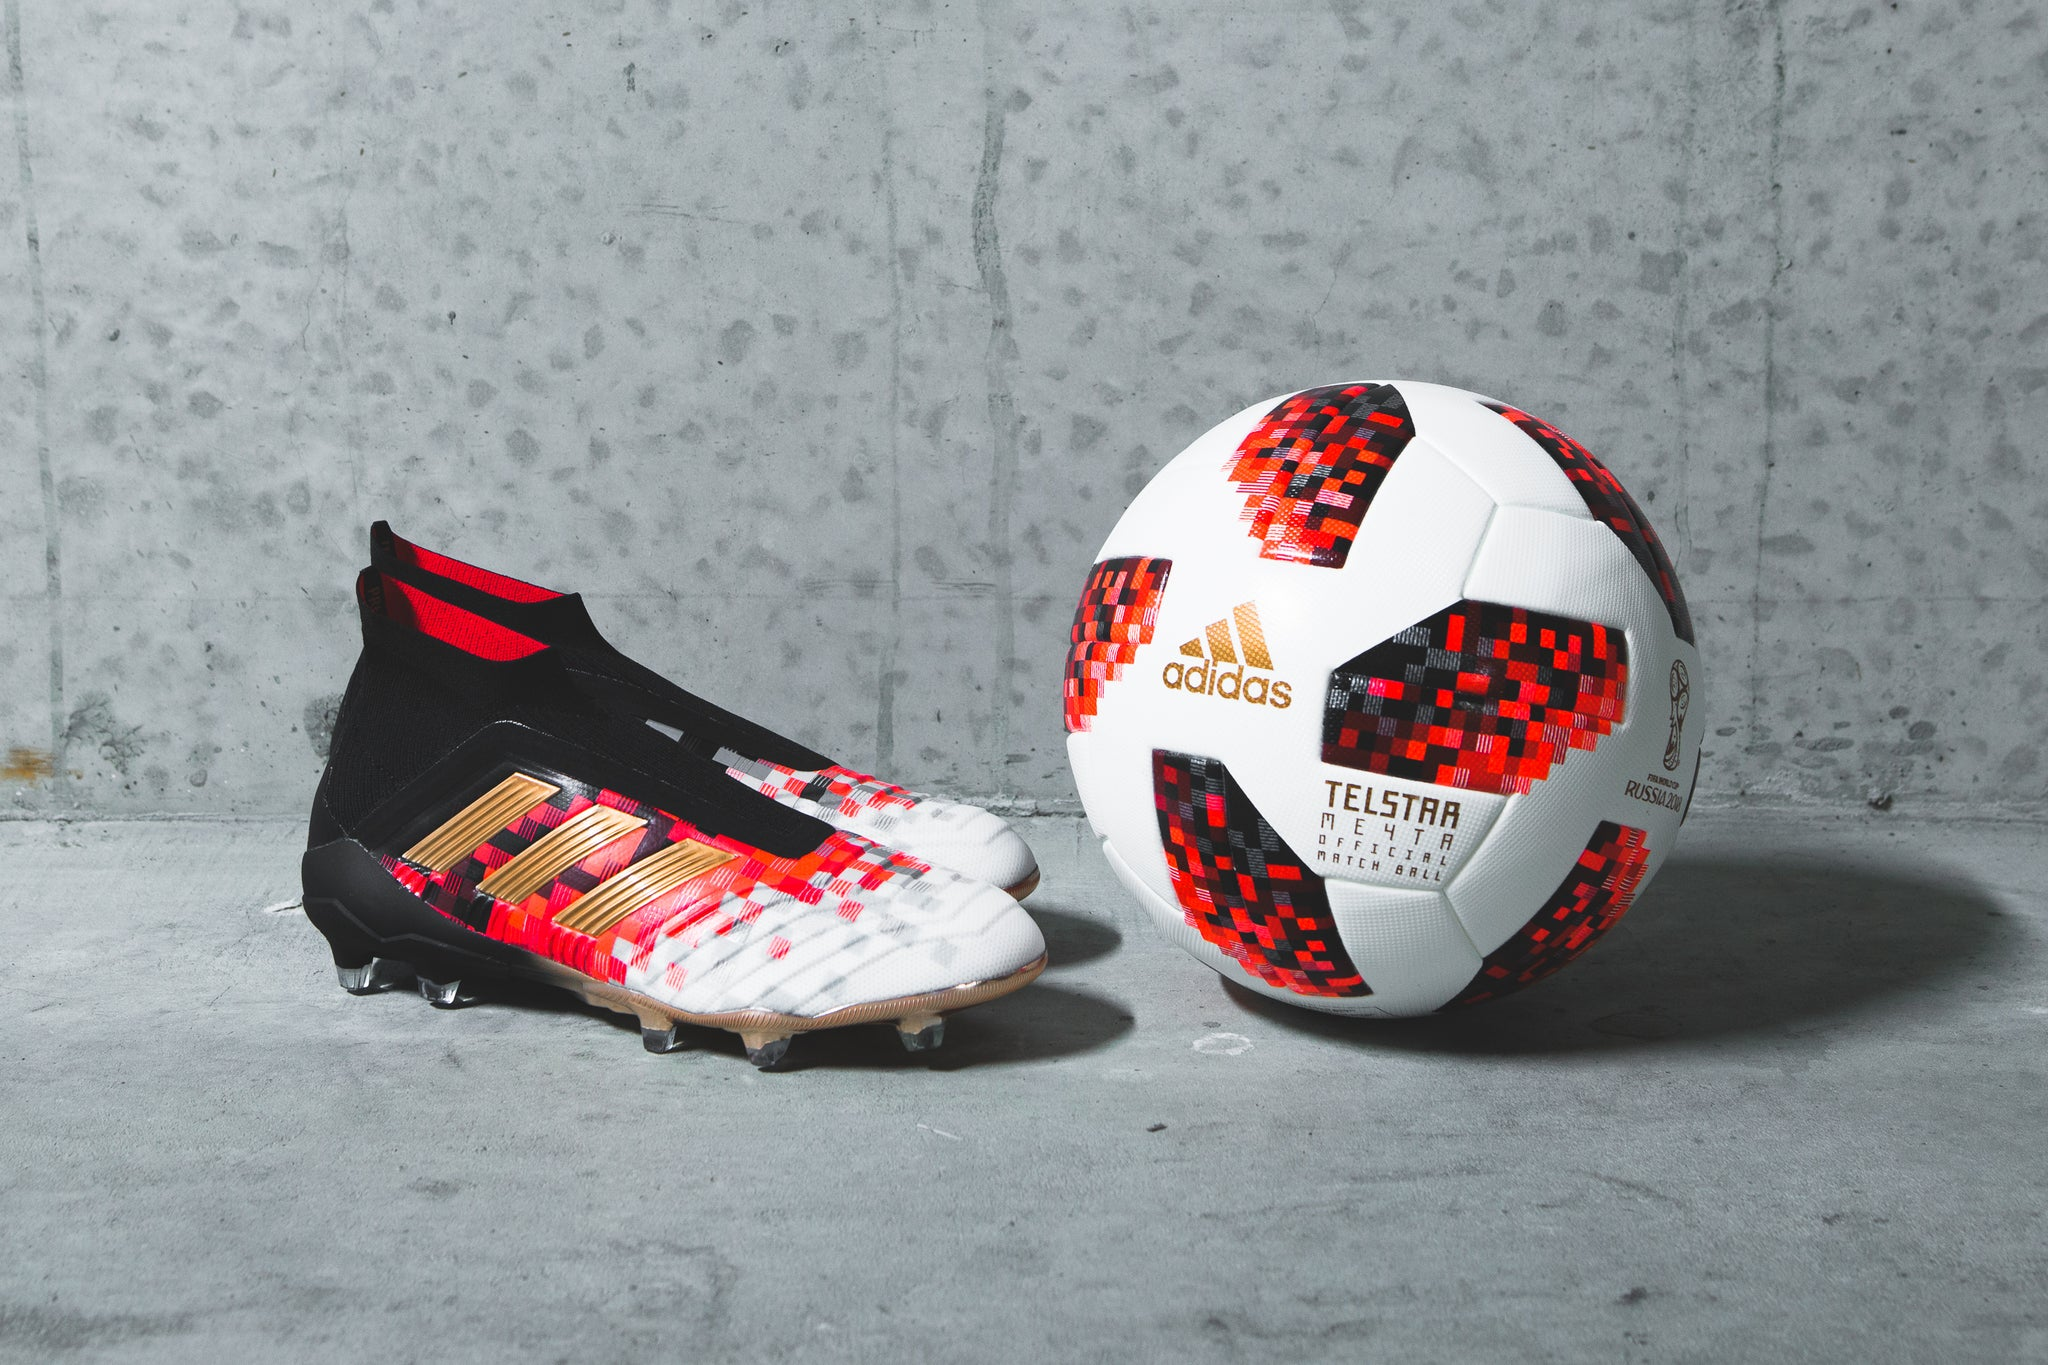 best loved 18d35 6da03 ... adidas Predator Telstar 18 Football Boot. Brought to life for the  Knock-out stages of this years FIFA World Cup by its knock-out round  matchball ...